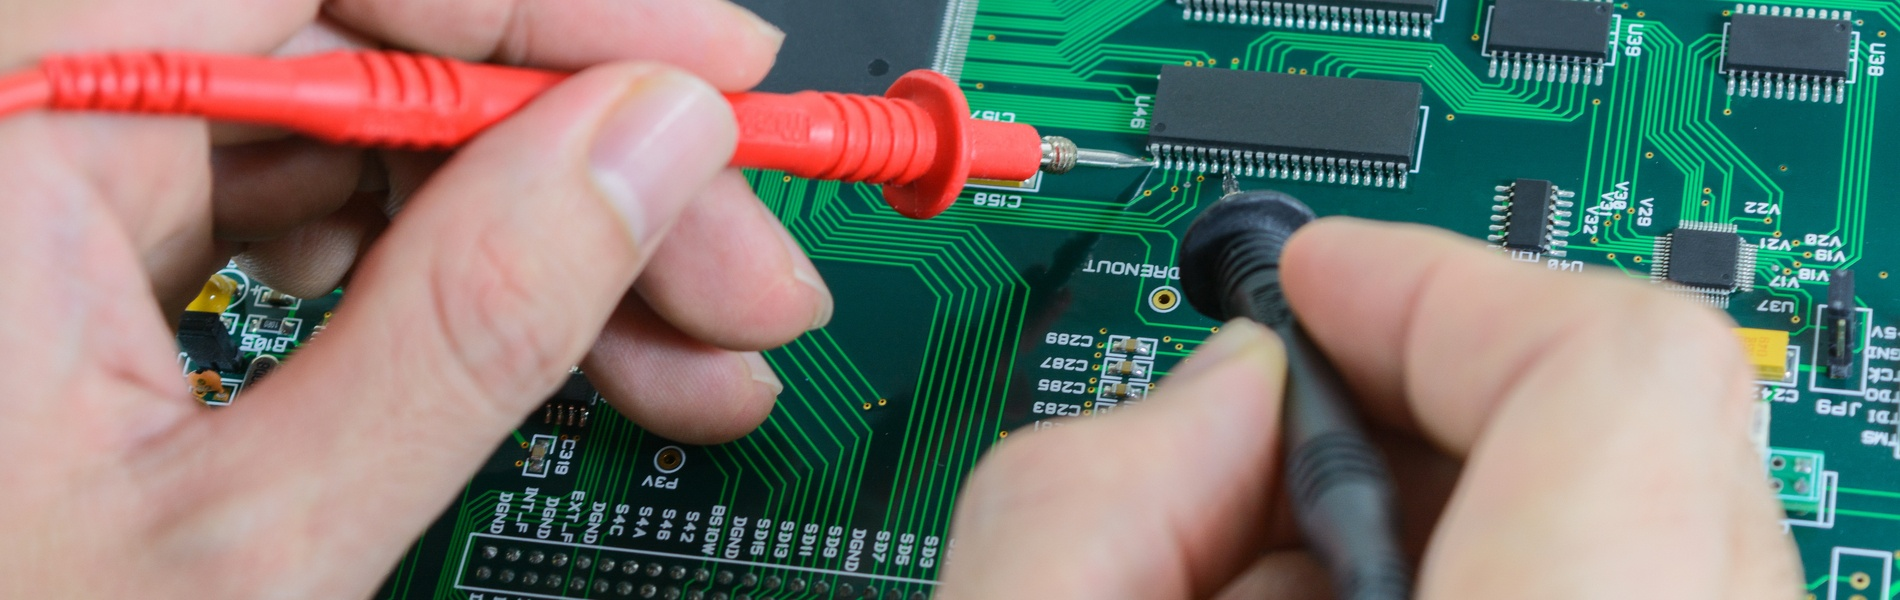 Test Solutions Your Ems Partner Should Offer How To Check A Circuit Board